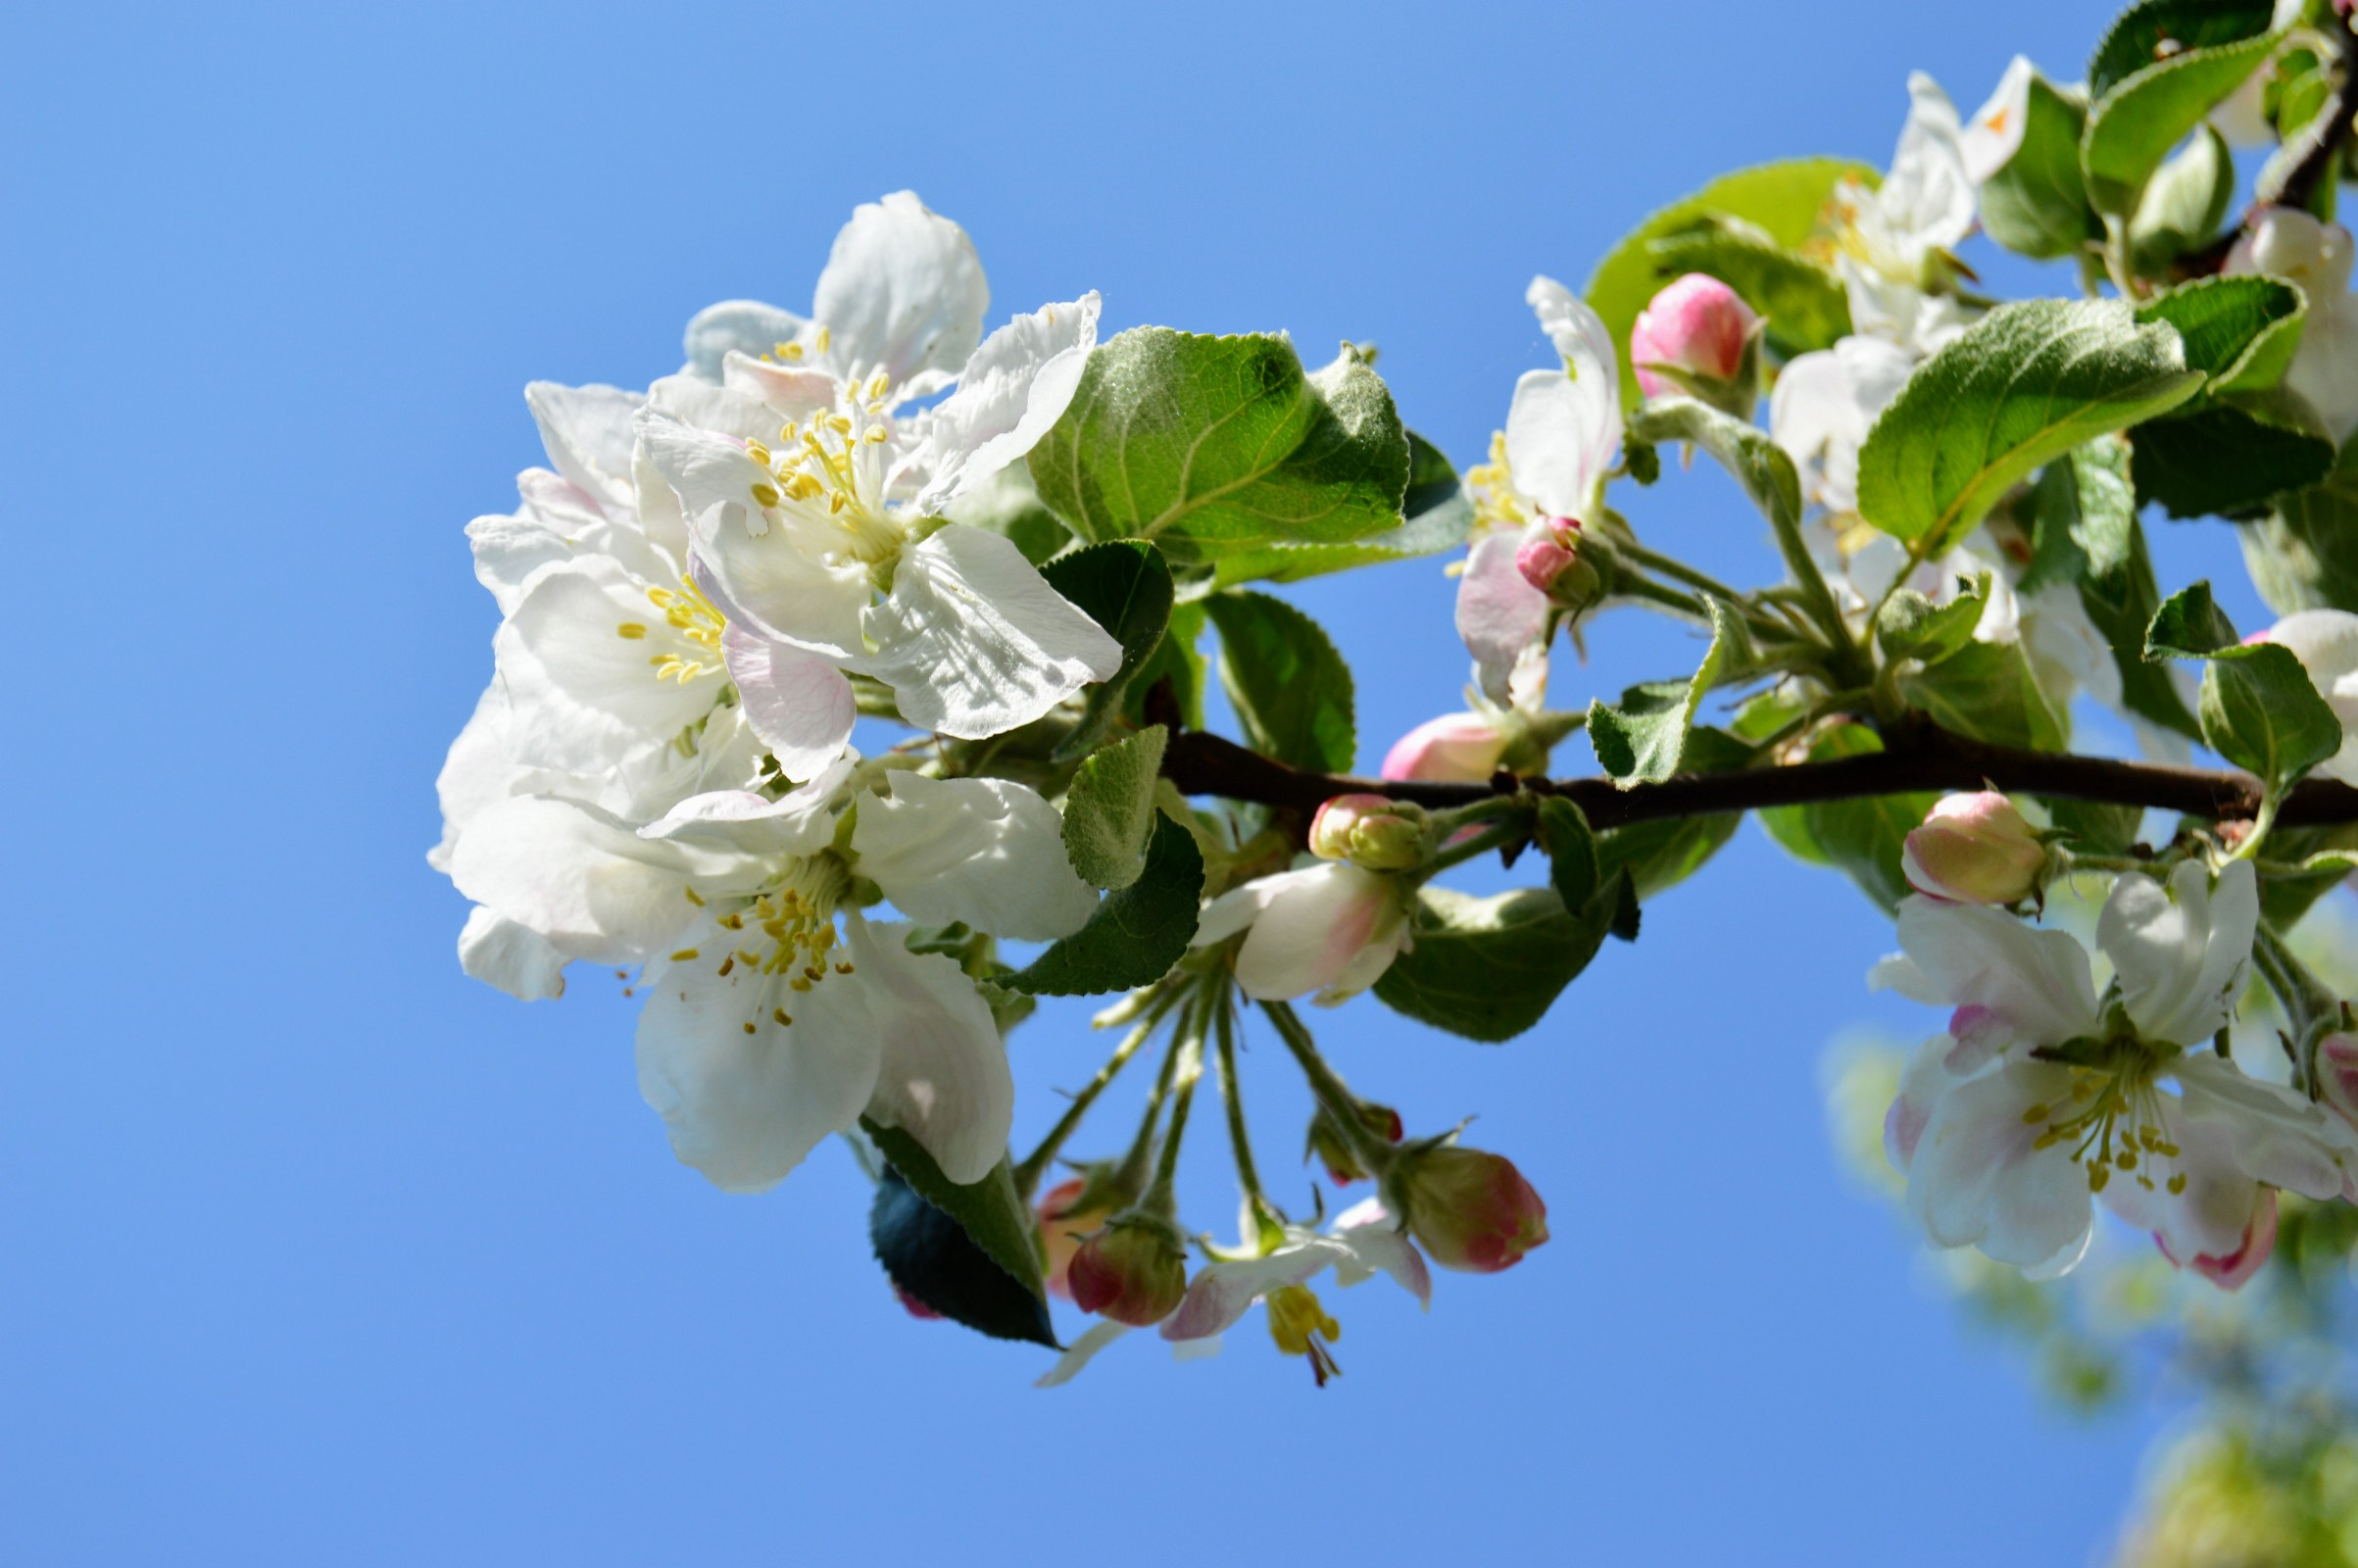 Flowering apple close-up on a background of blue sky photo